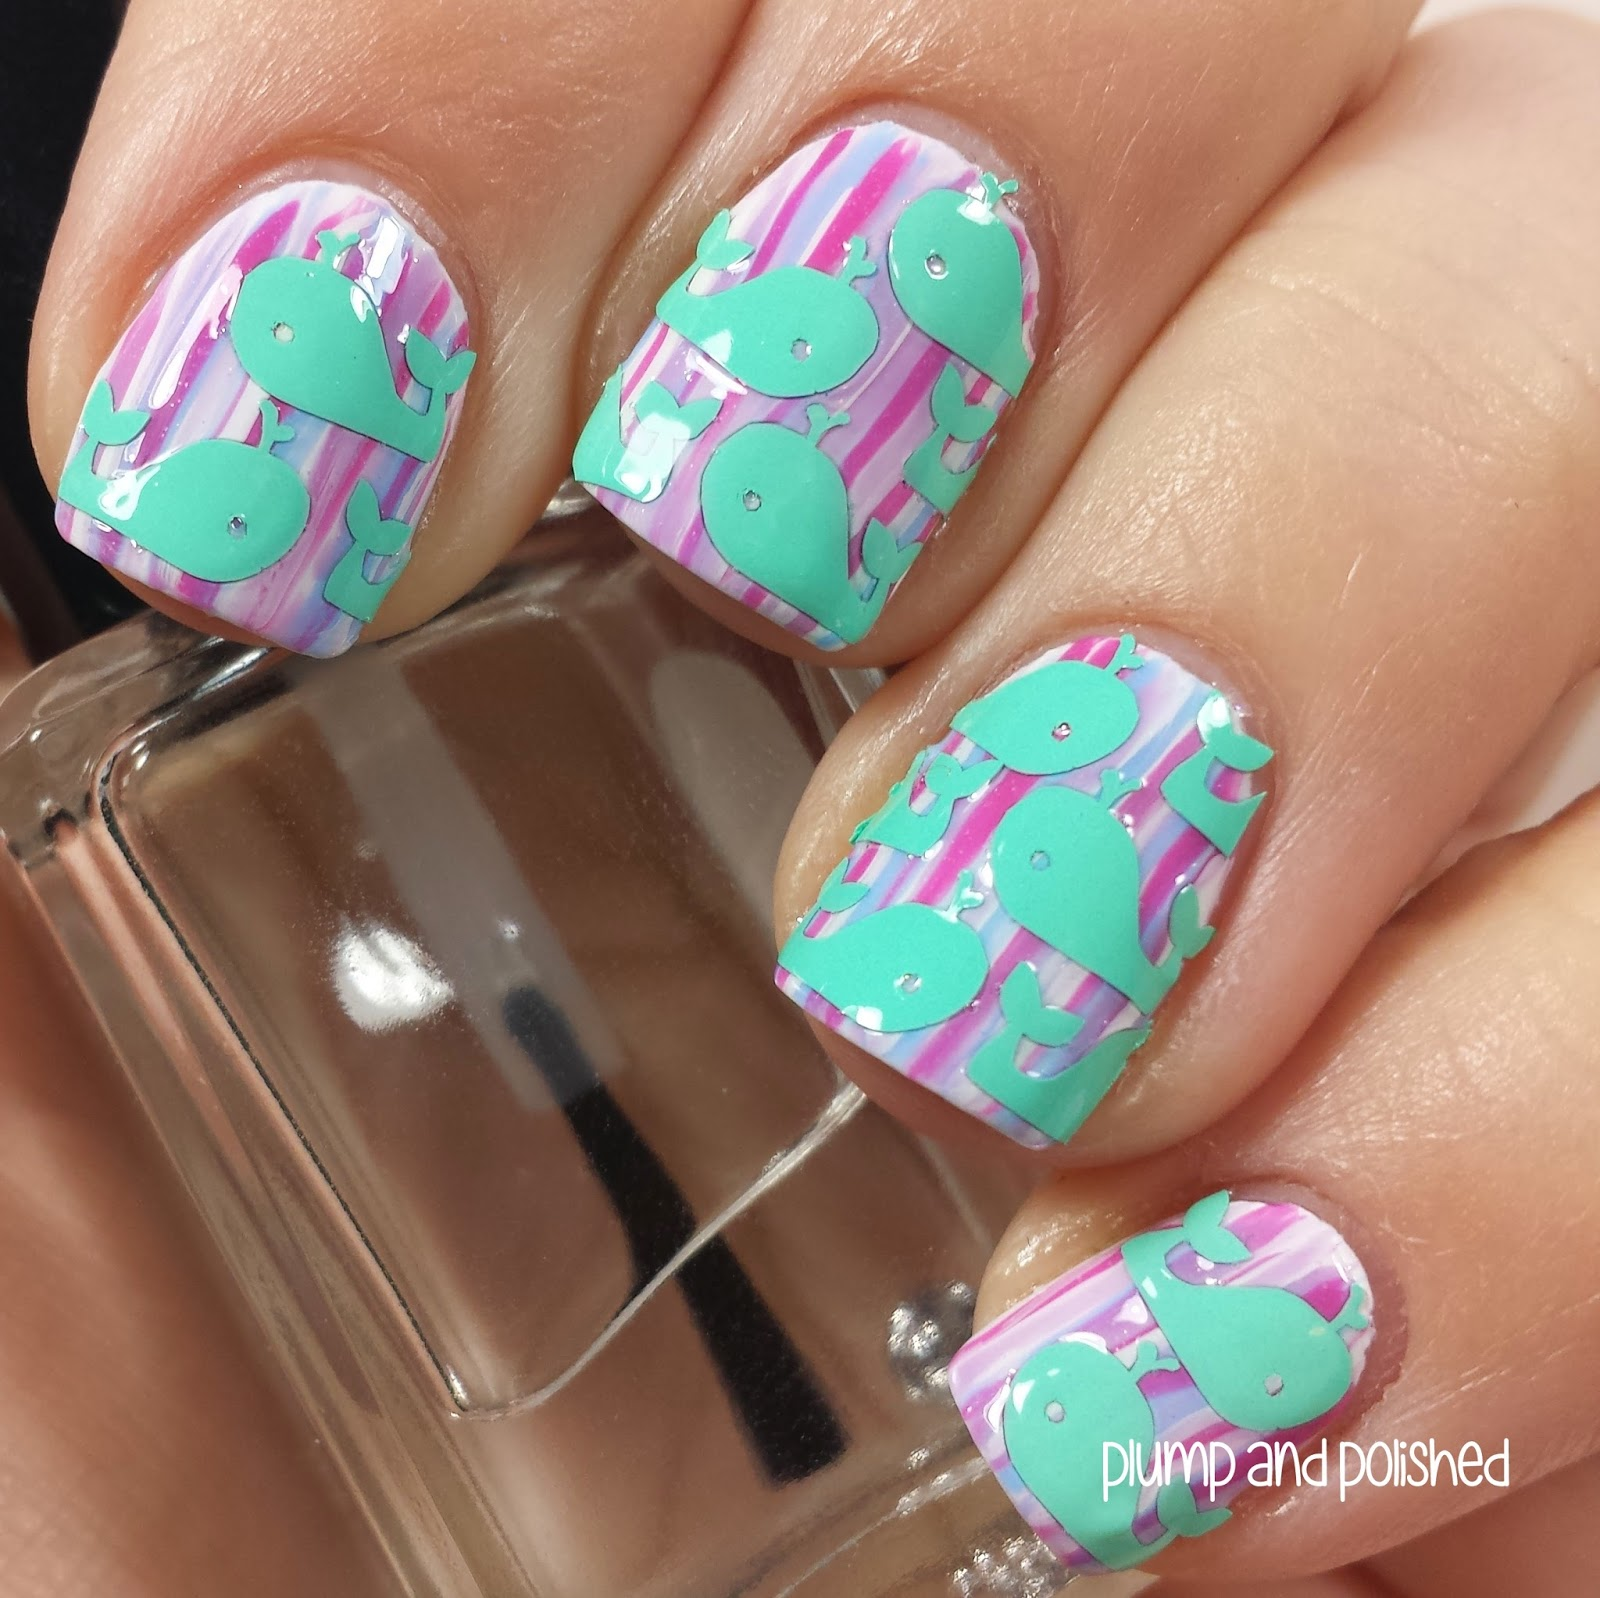 Plump and Polished: Lacquer by Lissa - Whale Nail Art Decals